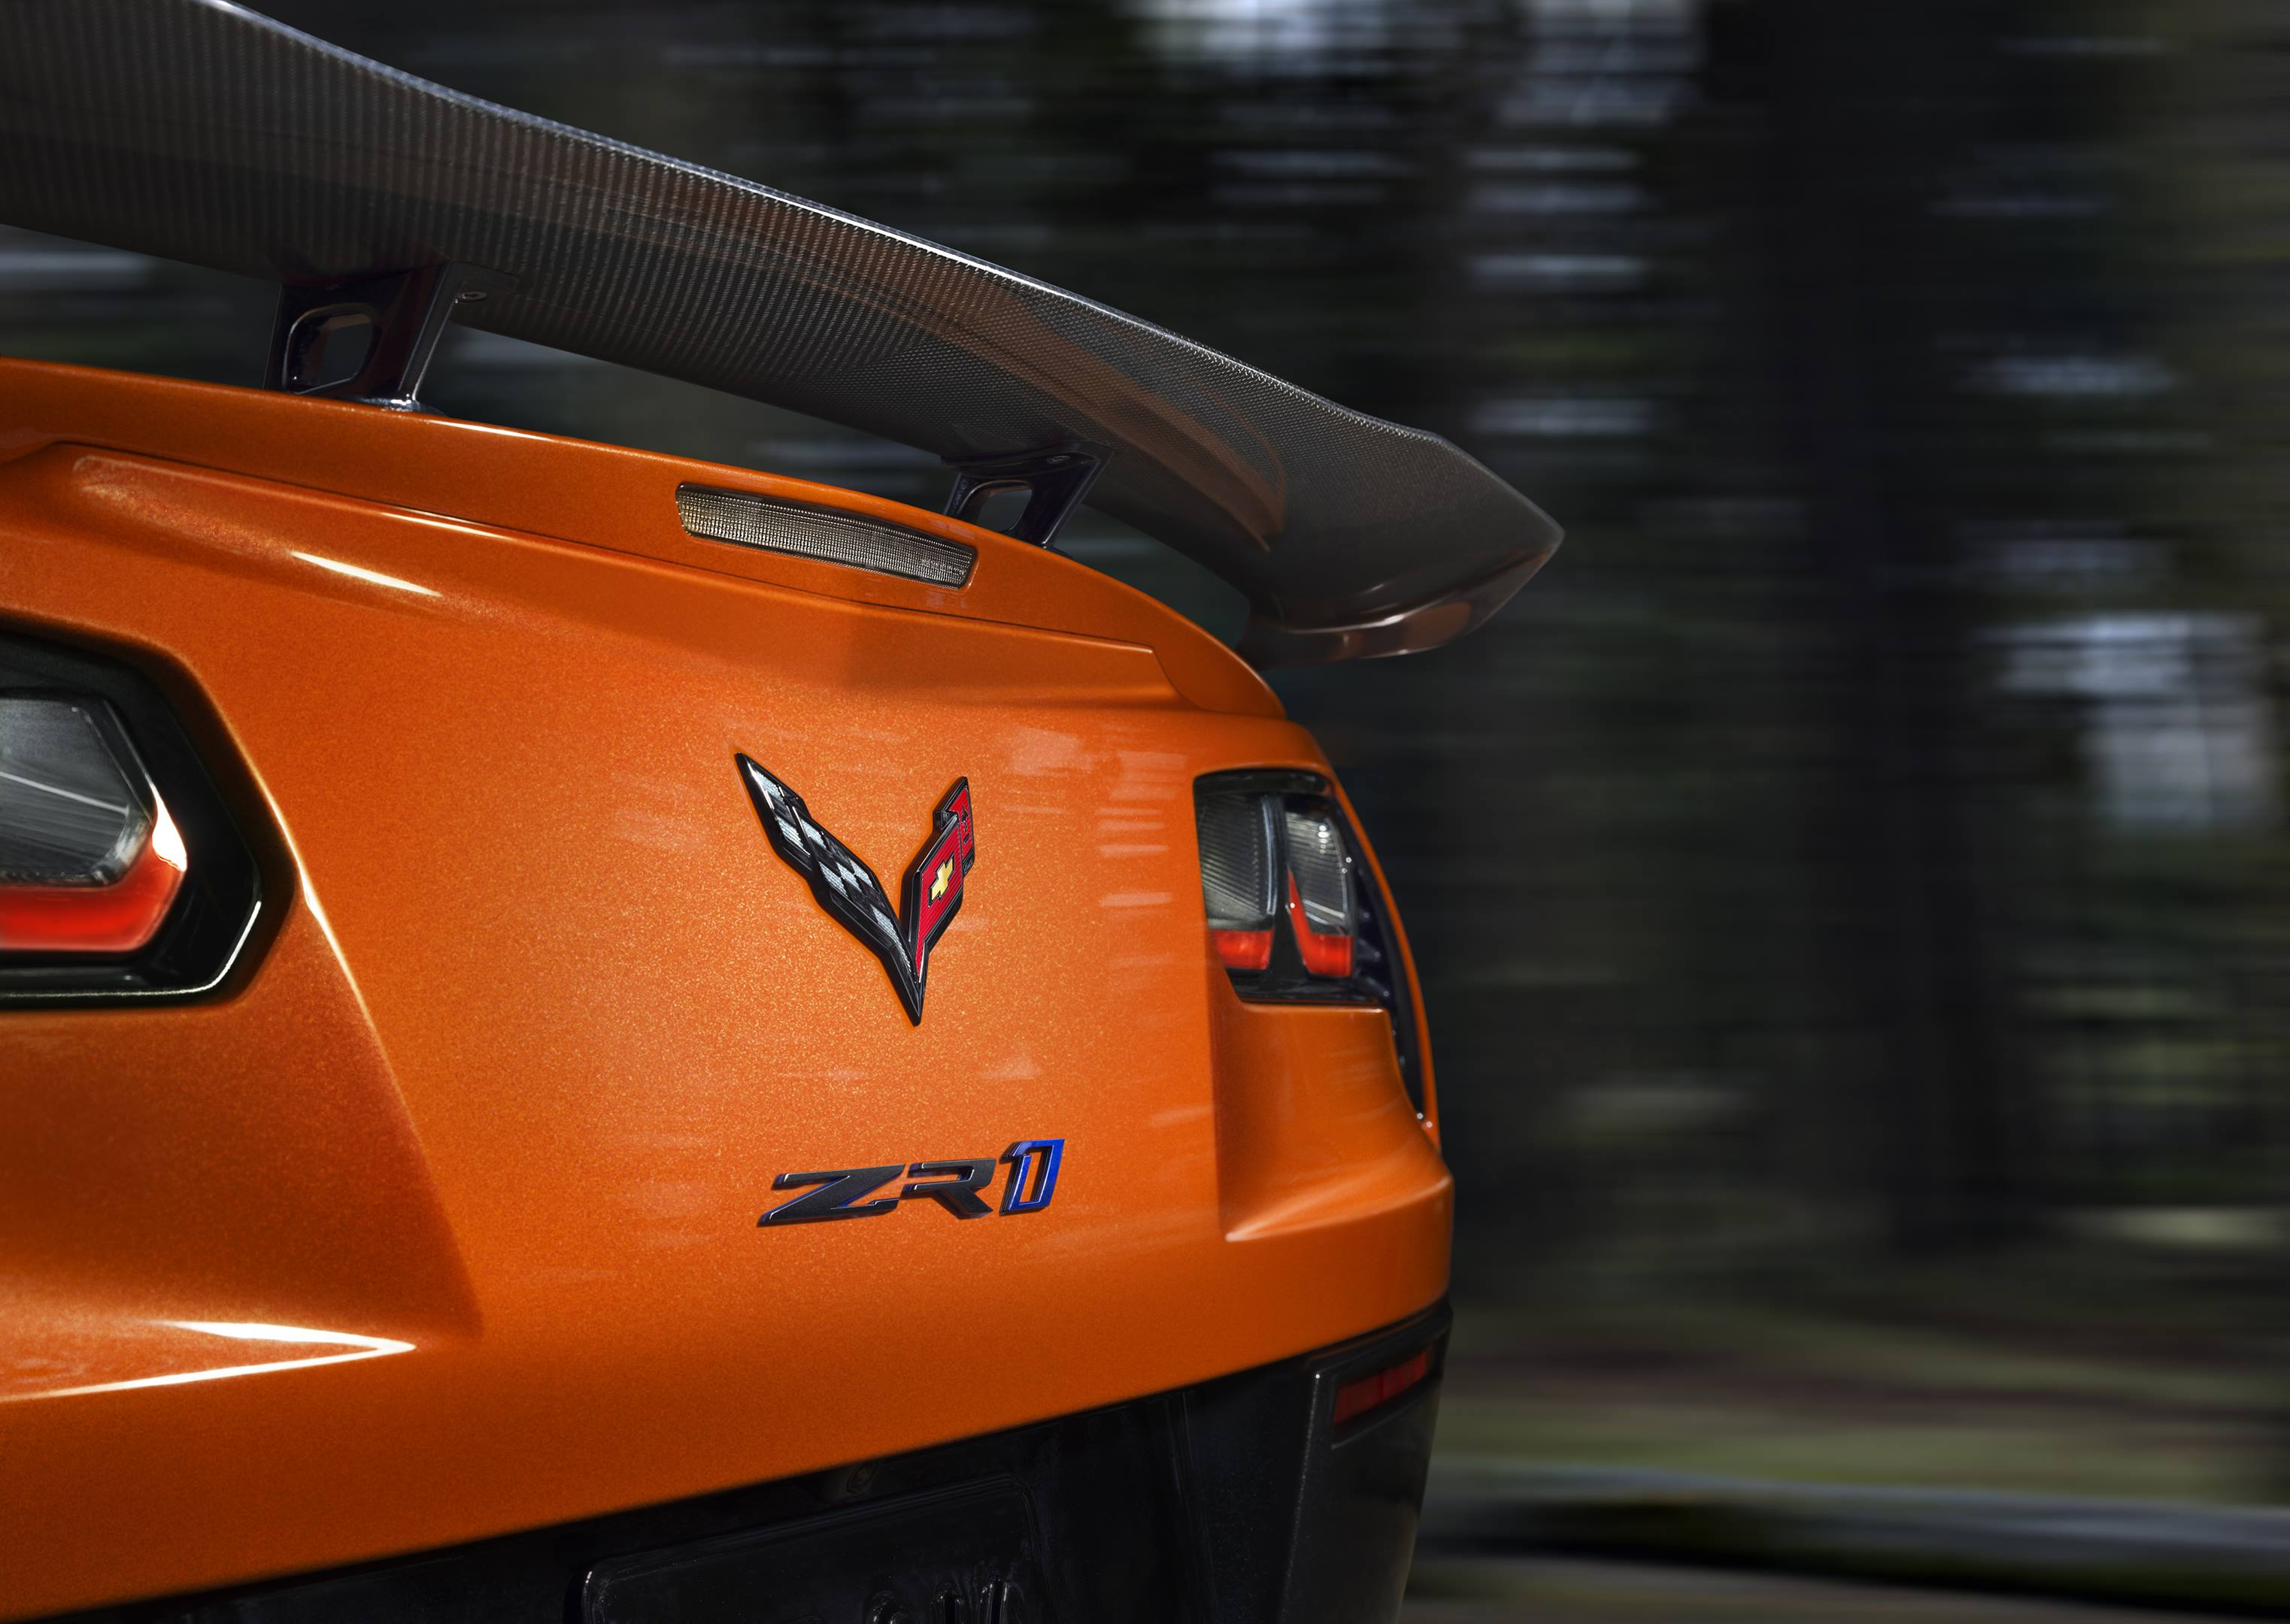 2019 Chevrolet Corvette ZR1 rear end detail shot